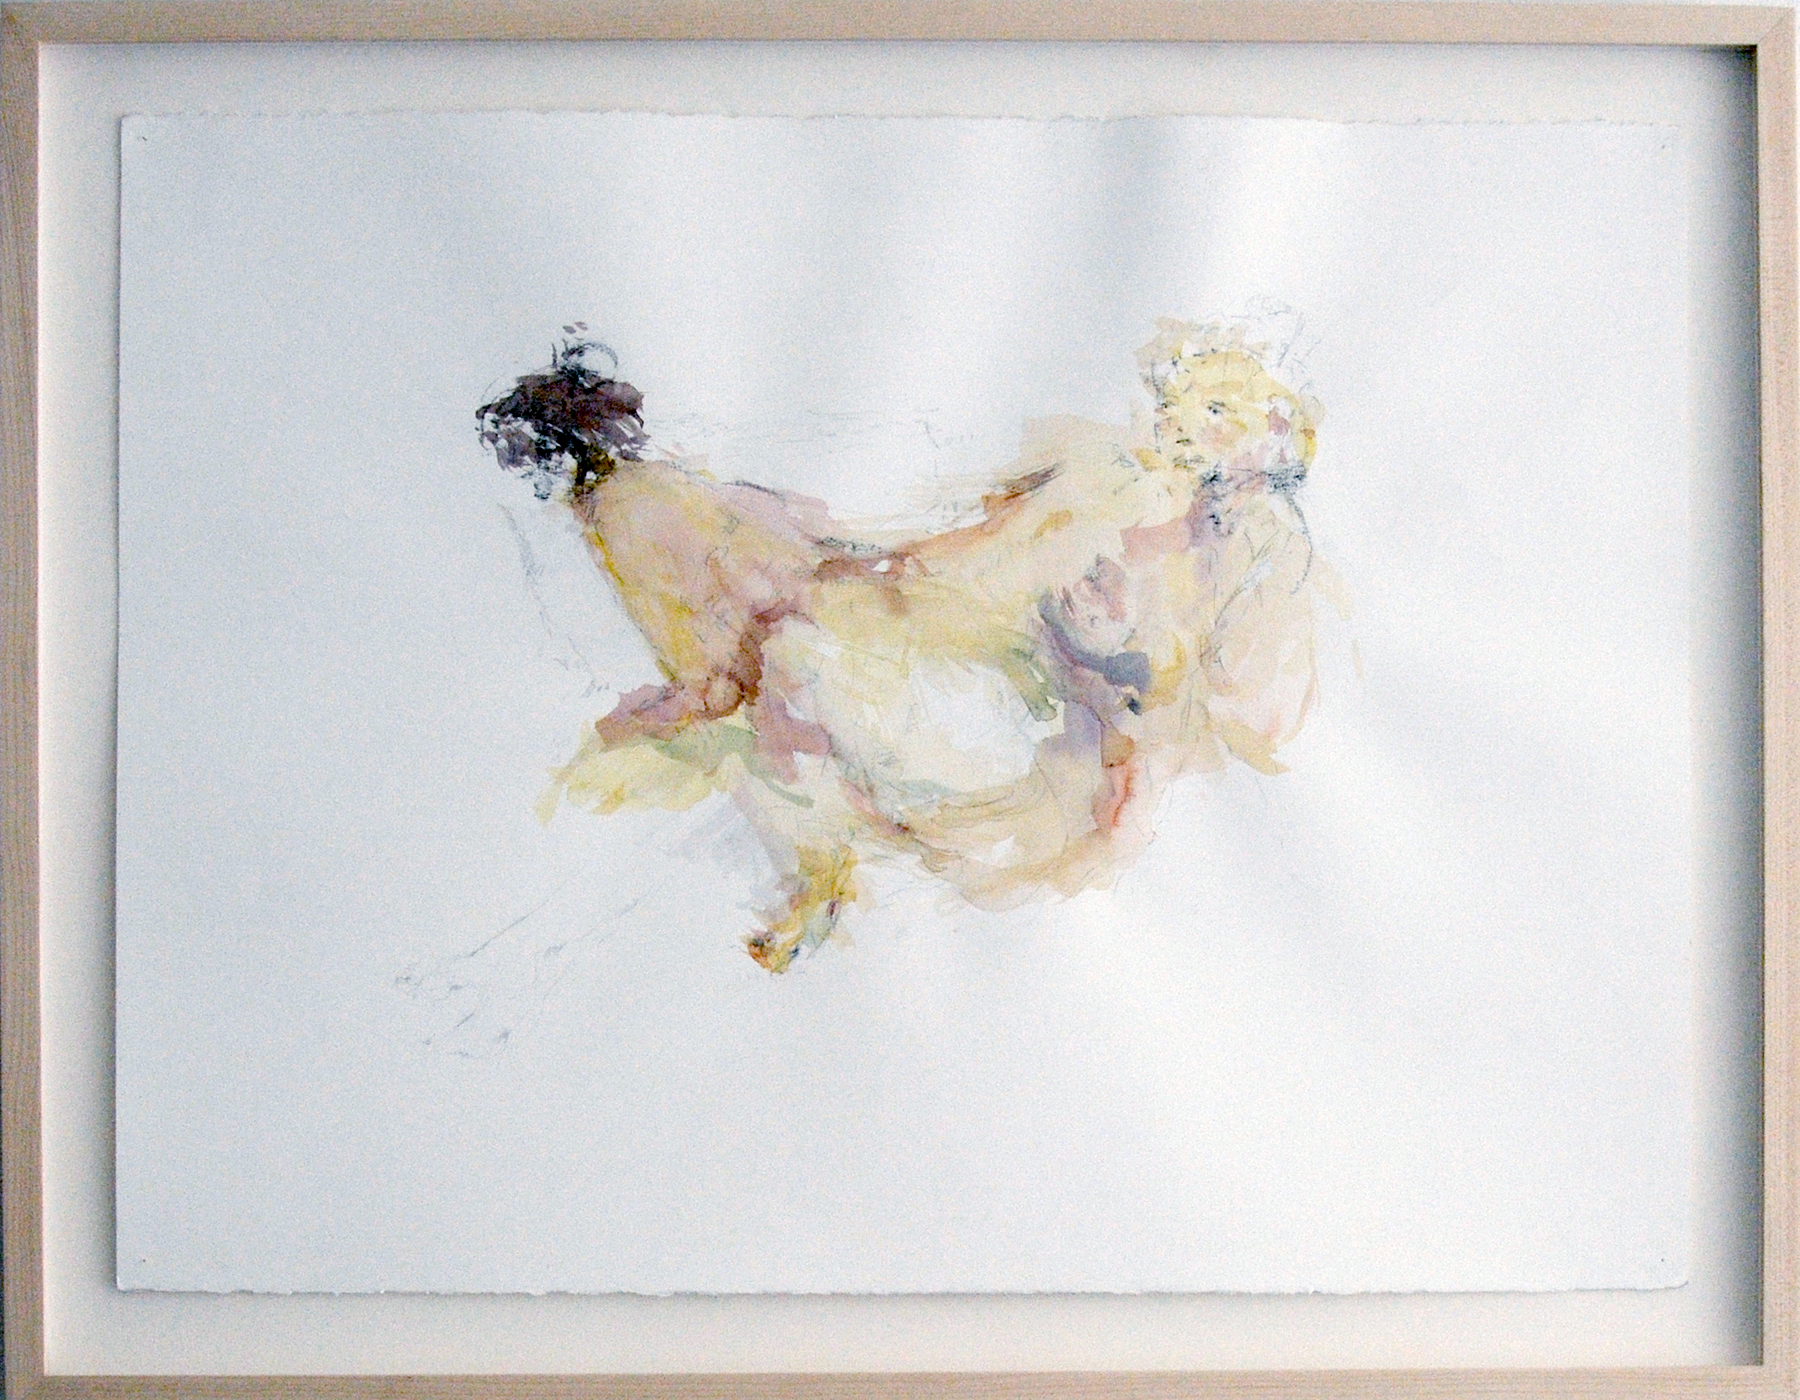 Sarah Creagen, Bodies for a second, 22 x 30 inches, graphite and watercolour on paper, 2015.jpeg